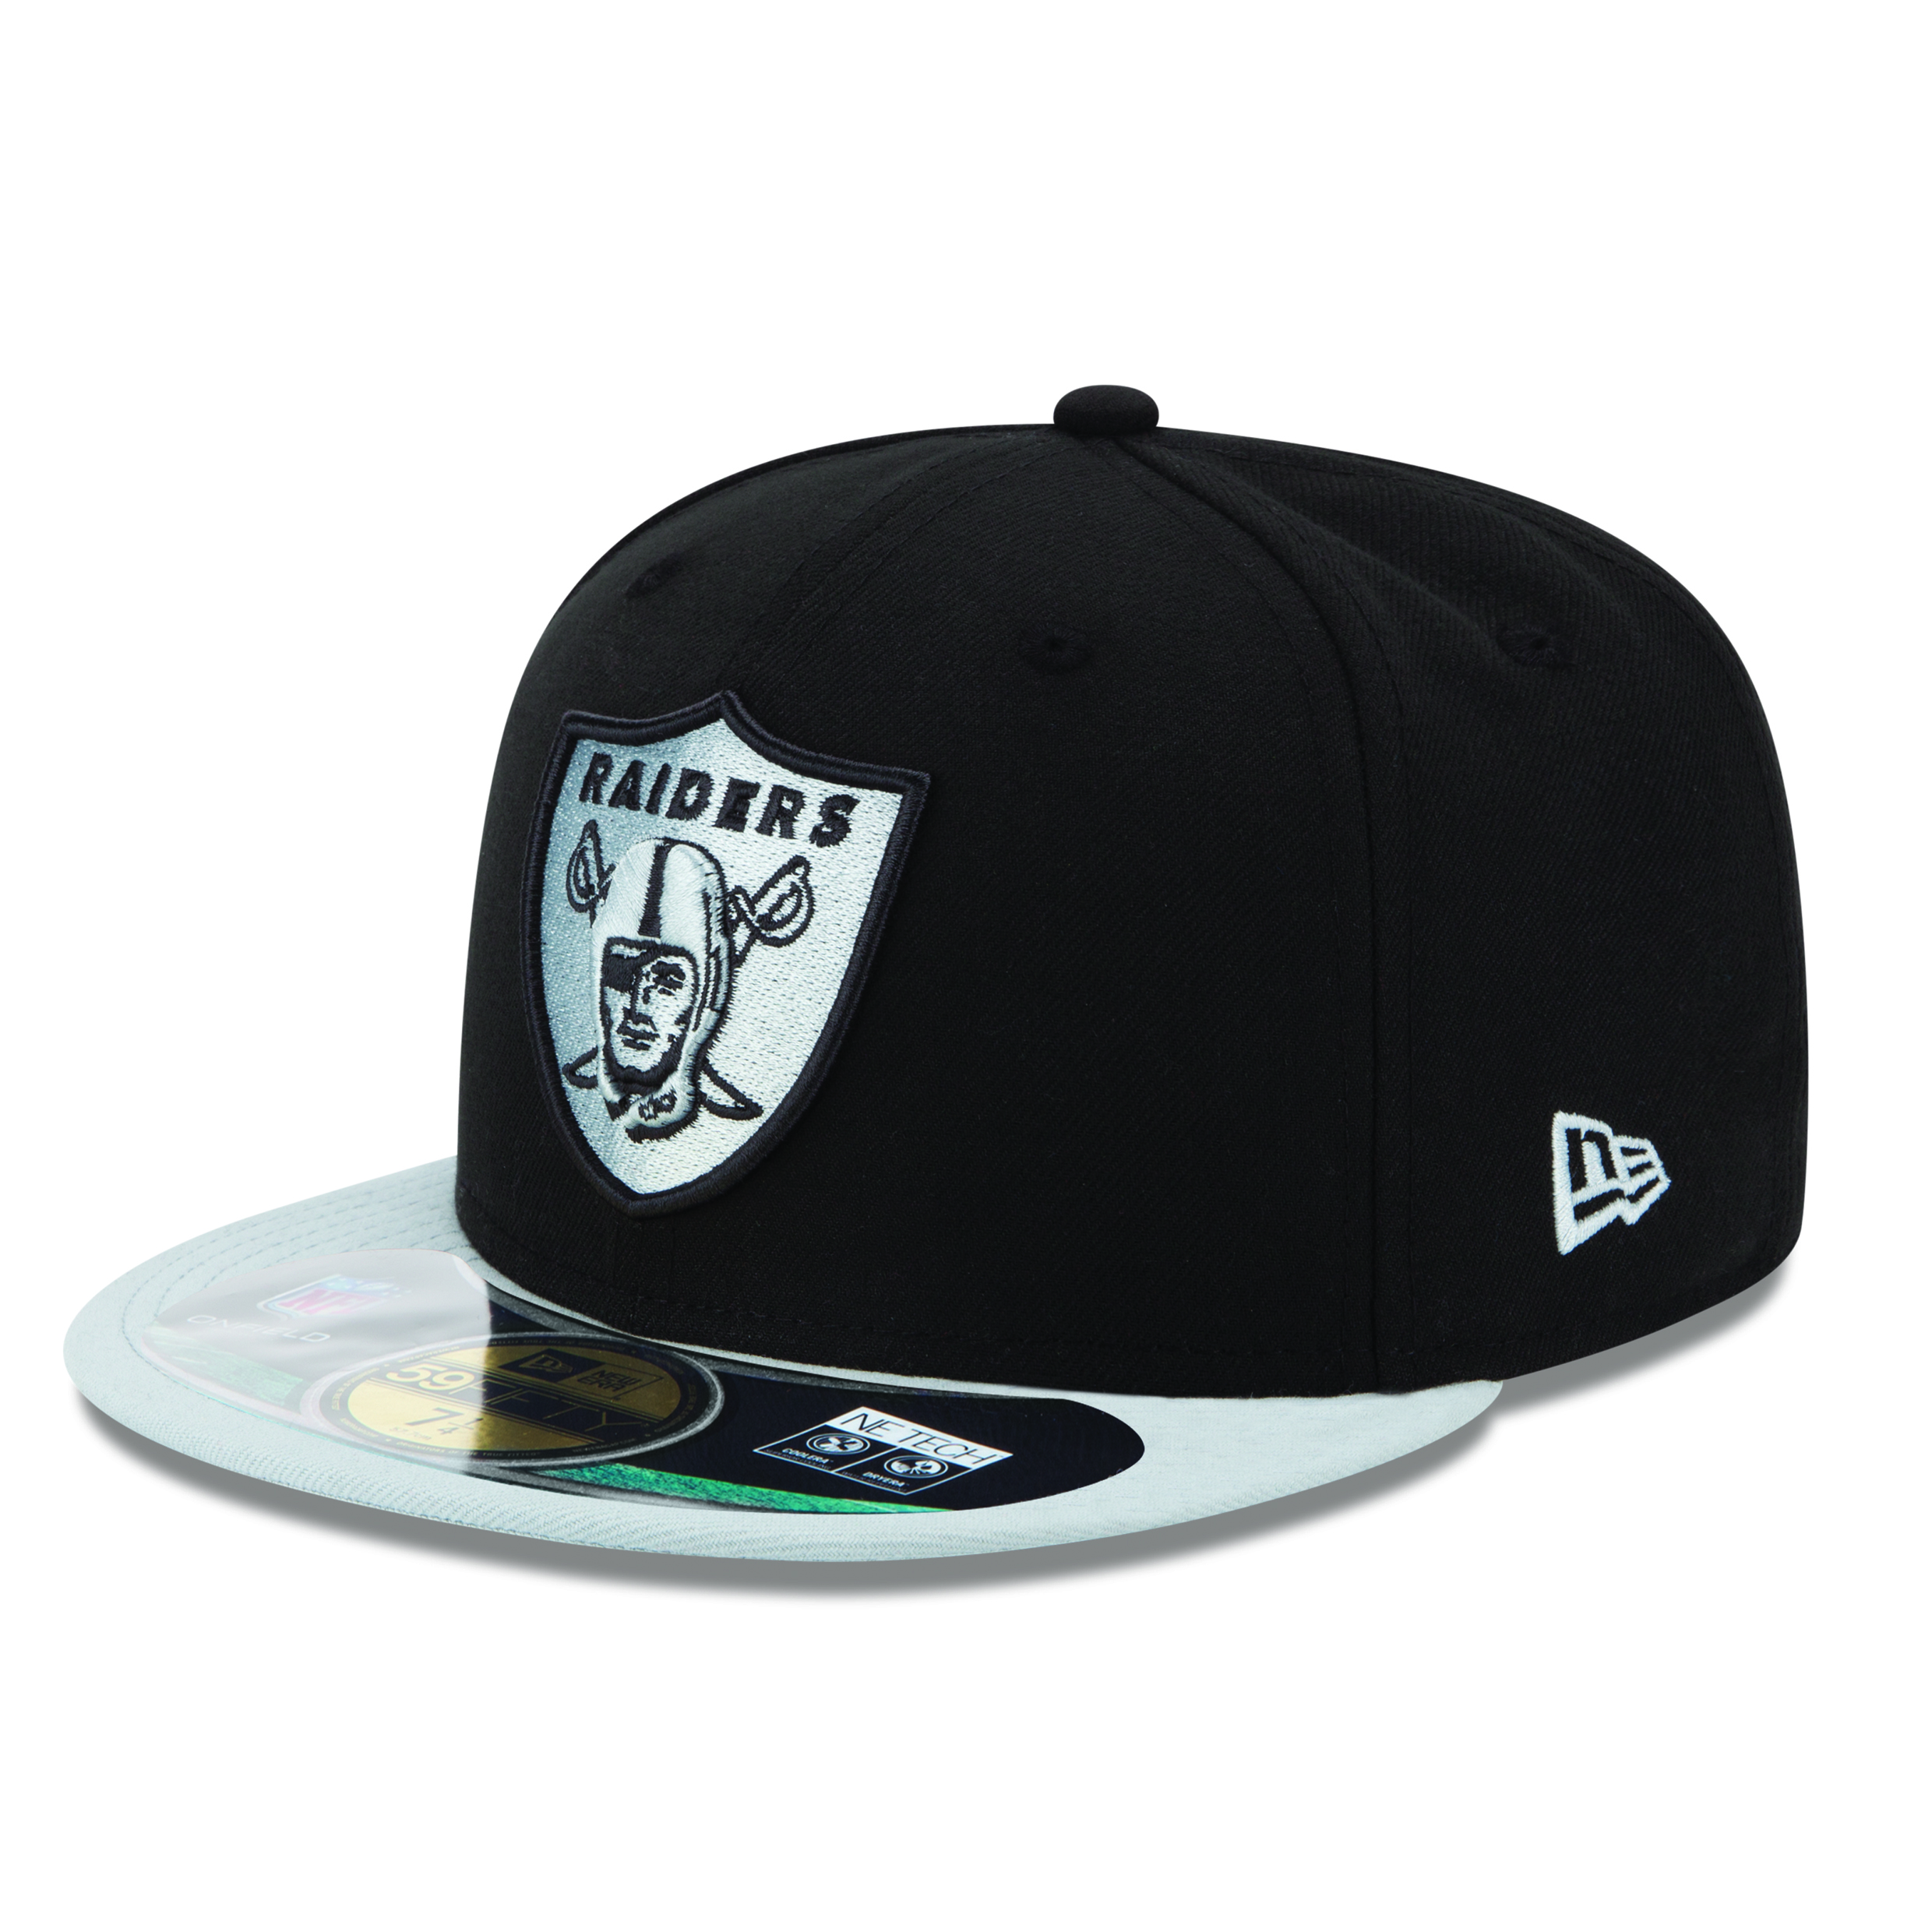 Oakland Raiders New Era 59 FIFTY Fitted Thanksgiving Cap